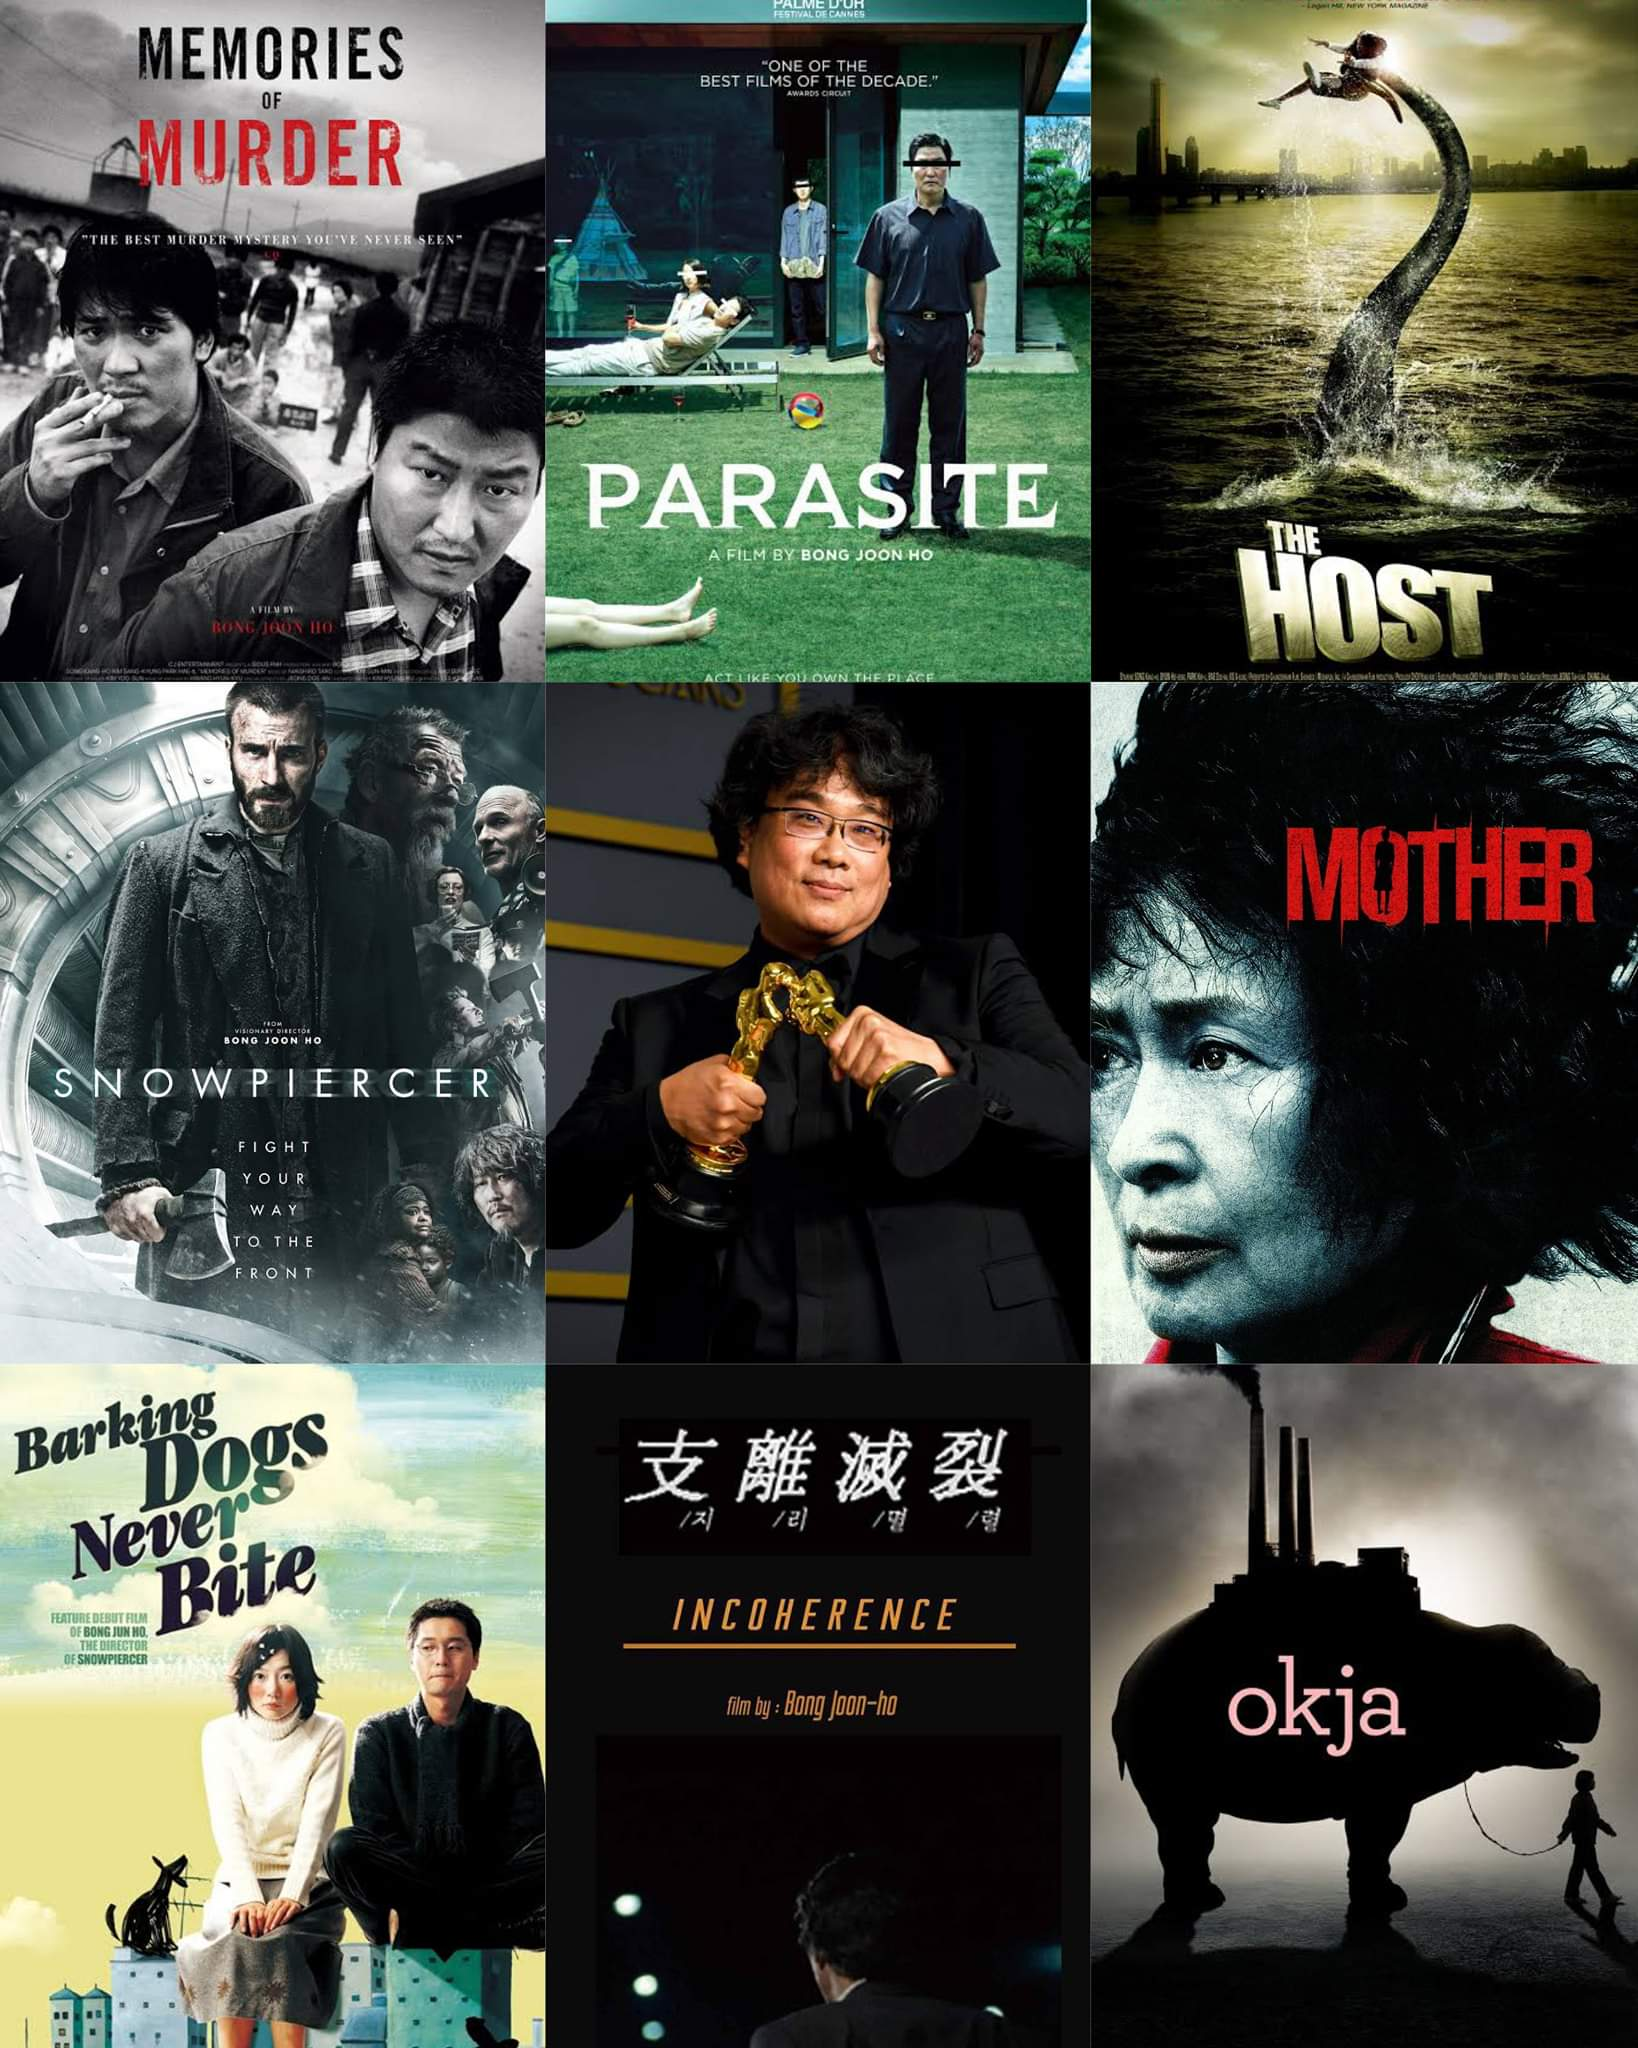 Happy 52nd birthday to one of the finest directors working today - Bong Joon-ho